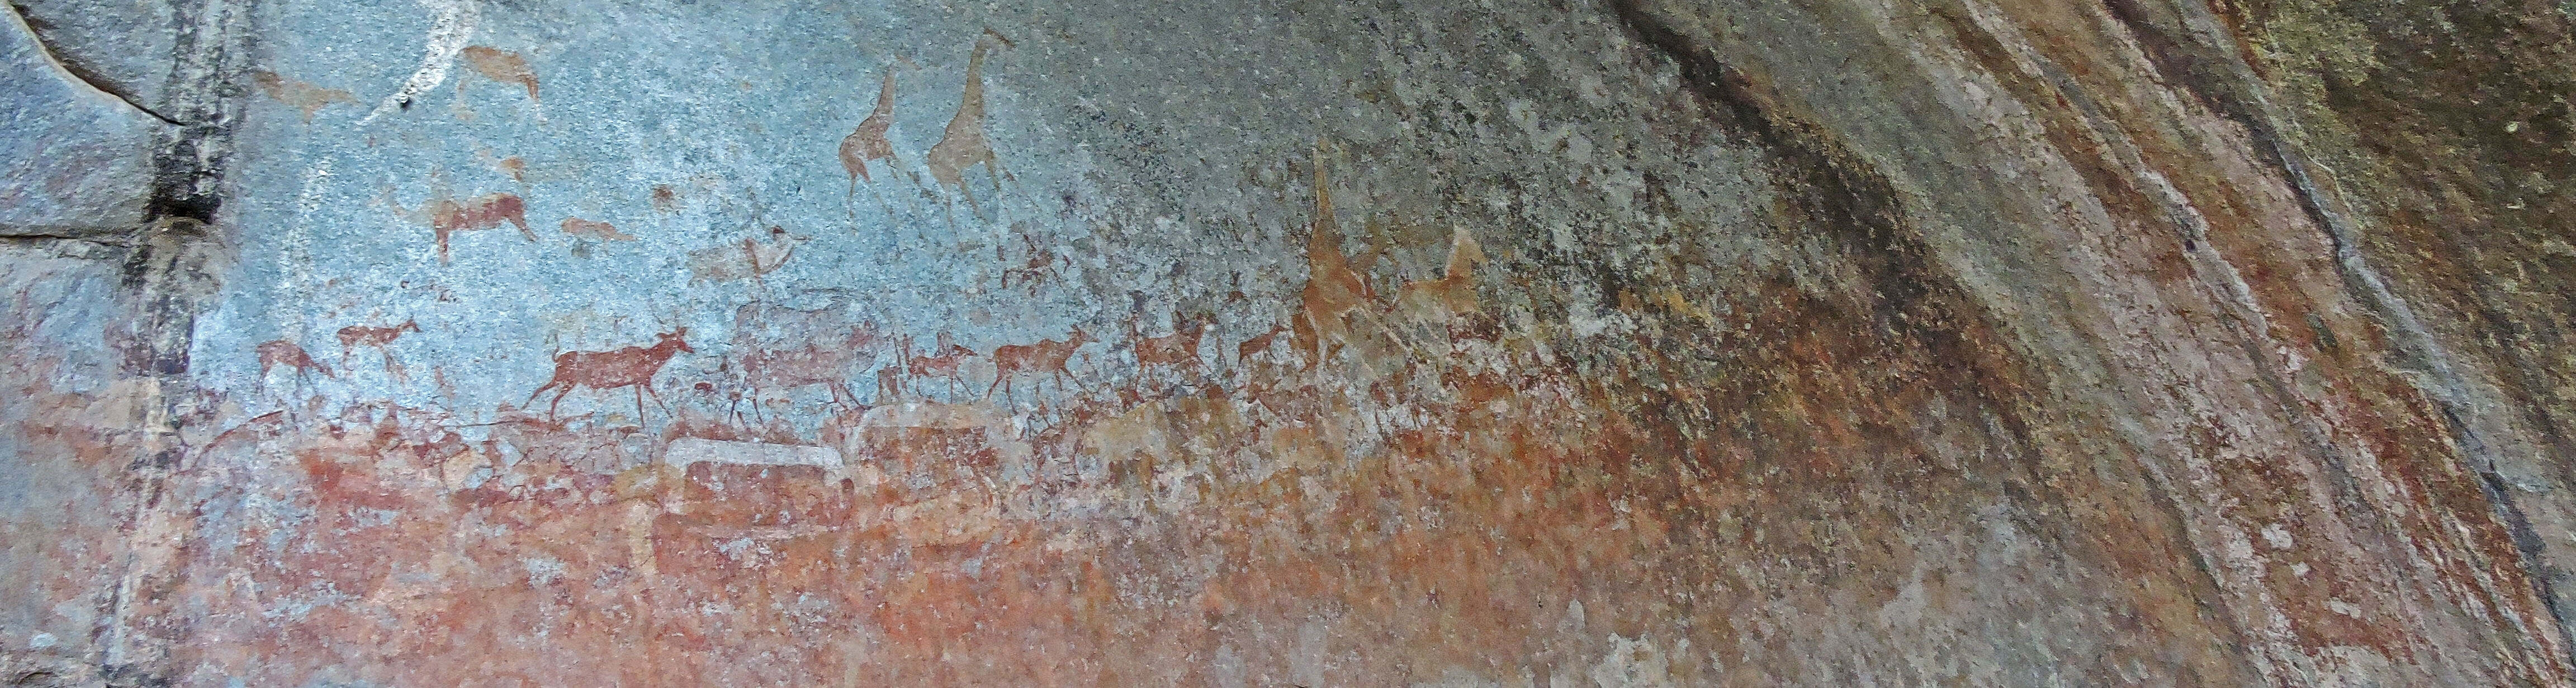 Rock paintings in Matobo National Park, Zimbabwe | Jaimie-Lee Holtzhausen